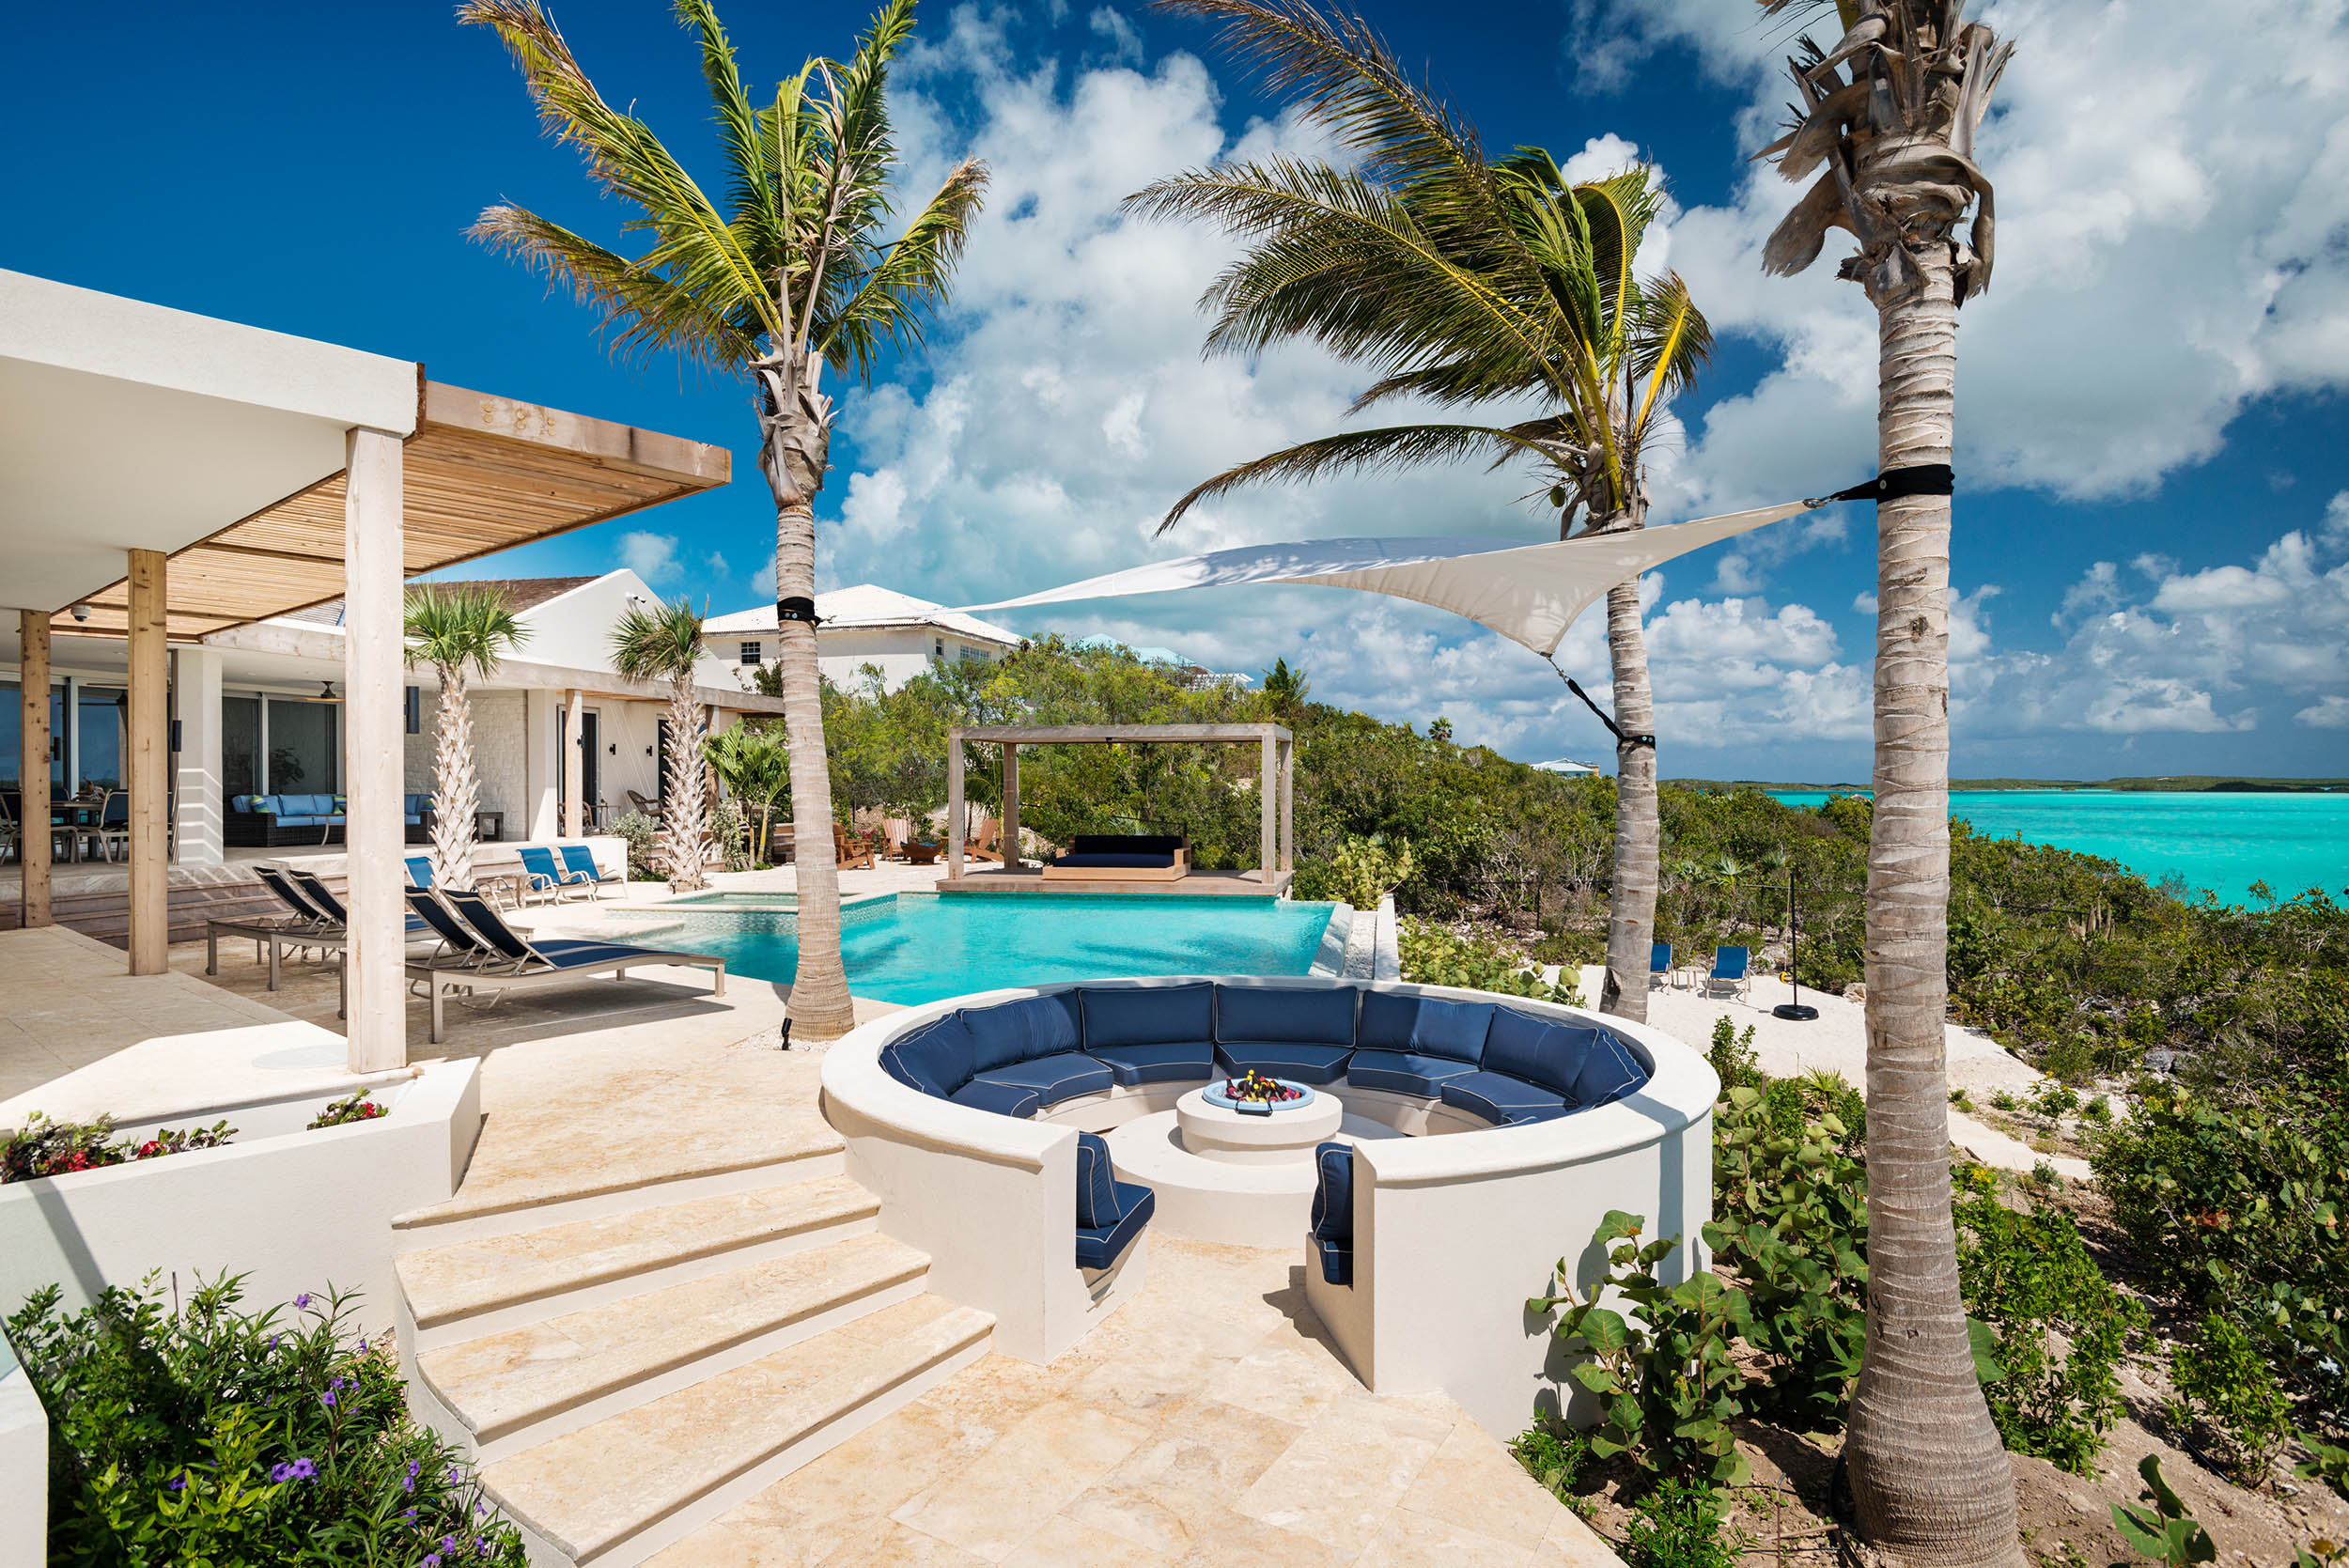 Villa Alinna - view of the fire pit, pool and cabana